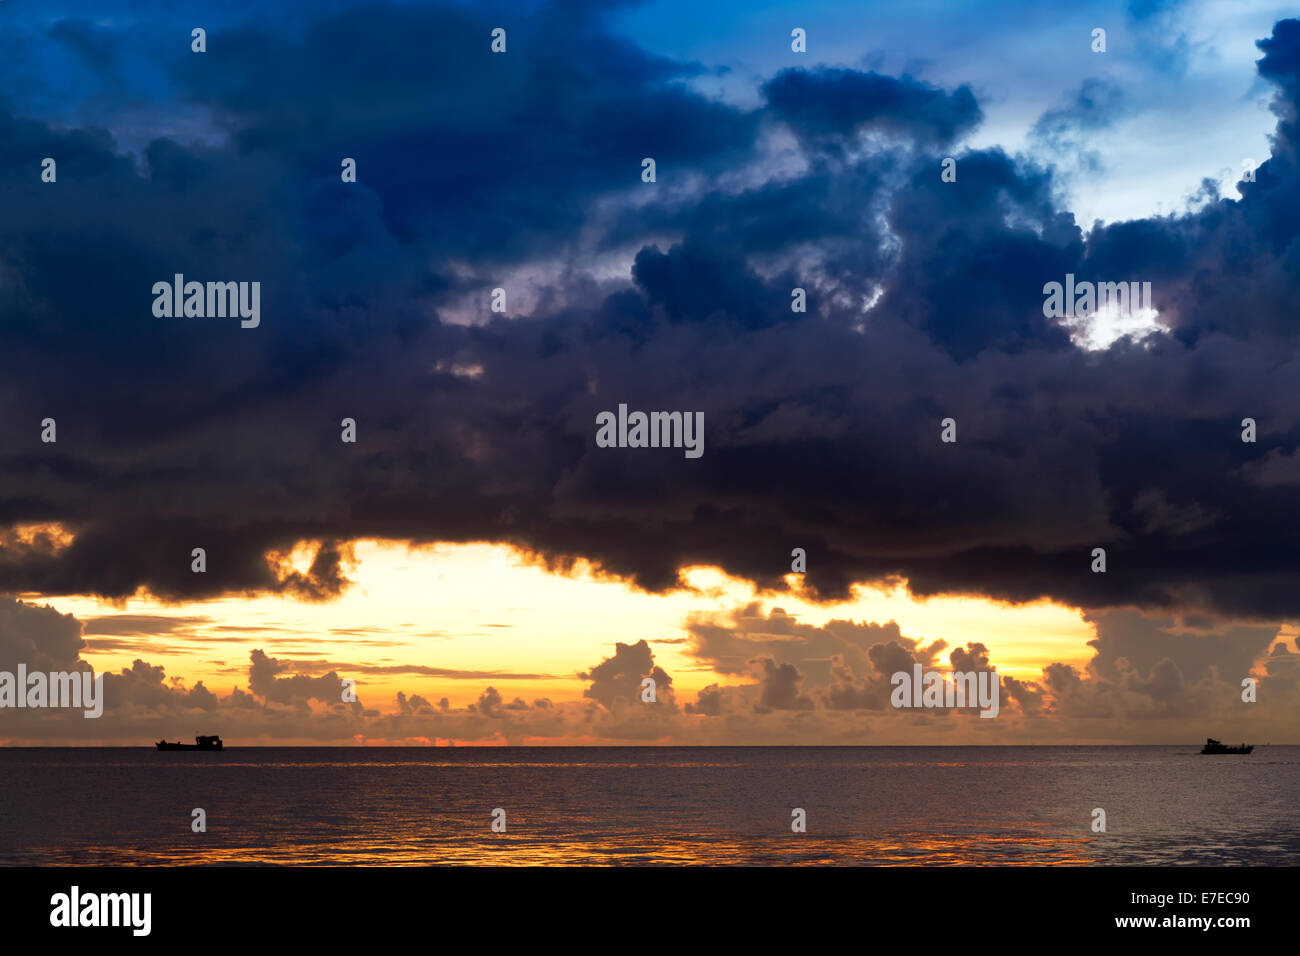 Sunset at South China Sea with threatening sky and ships, Phu Quoc, Vietnam - Stock Image